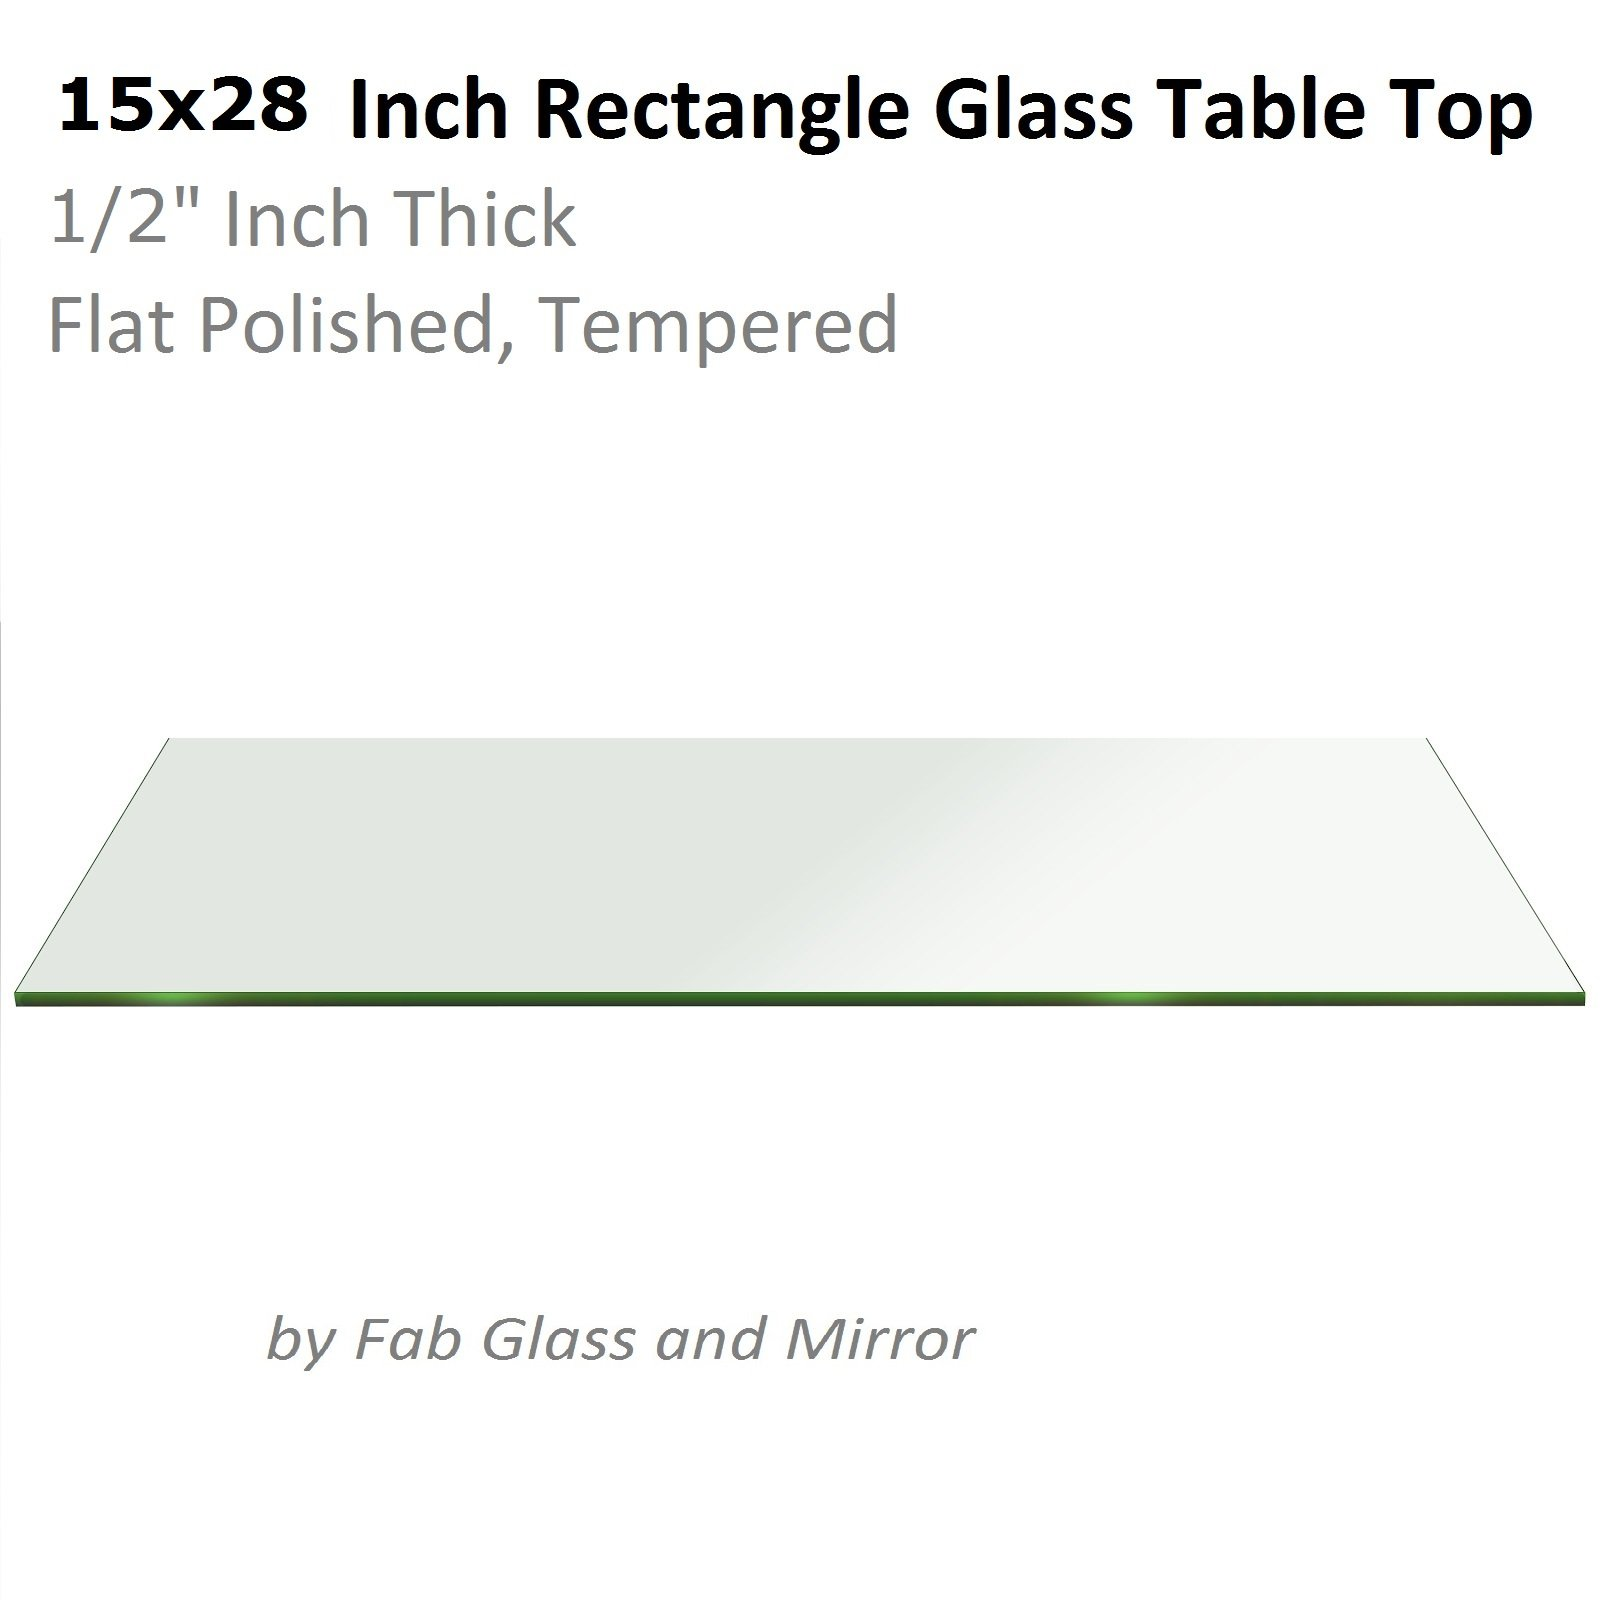 Fab Glass and Mirror T-15x28REC12THFLTE Rectangle Glass Table Top, 15'' x 28''